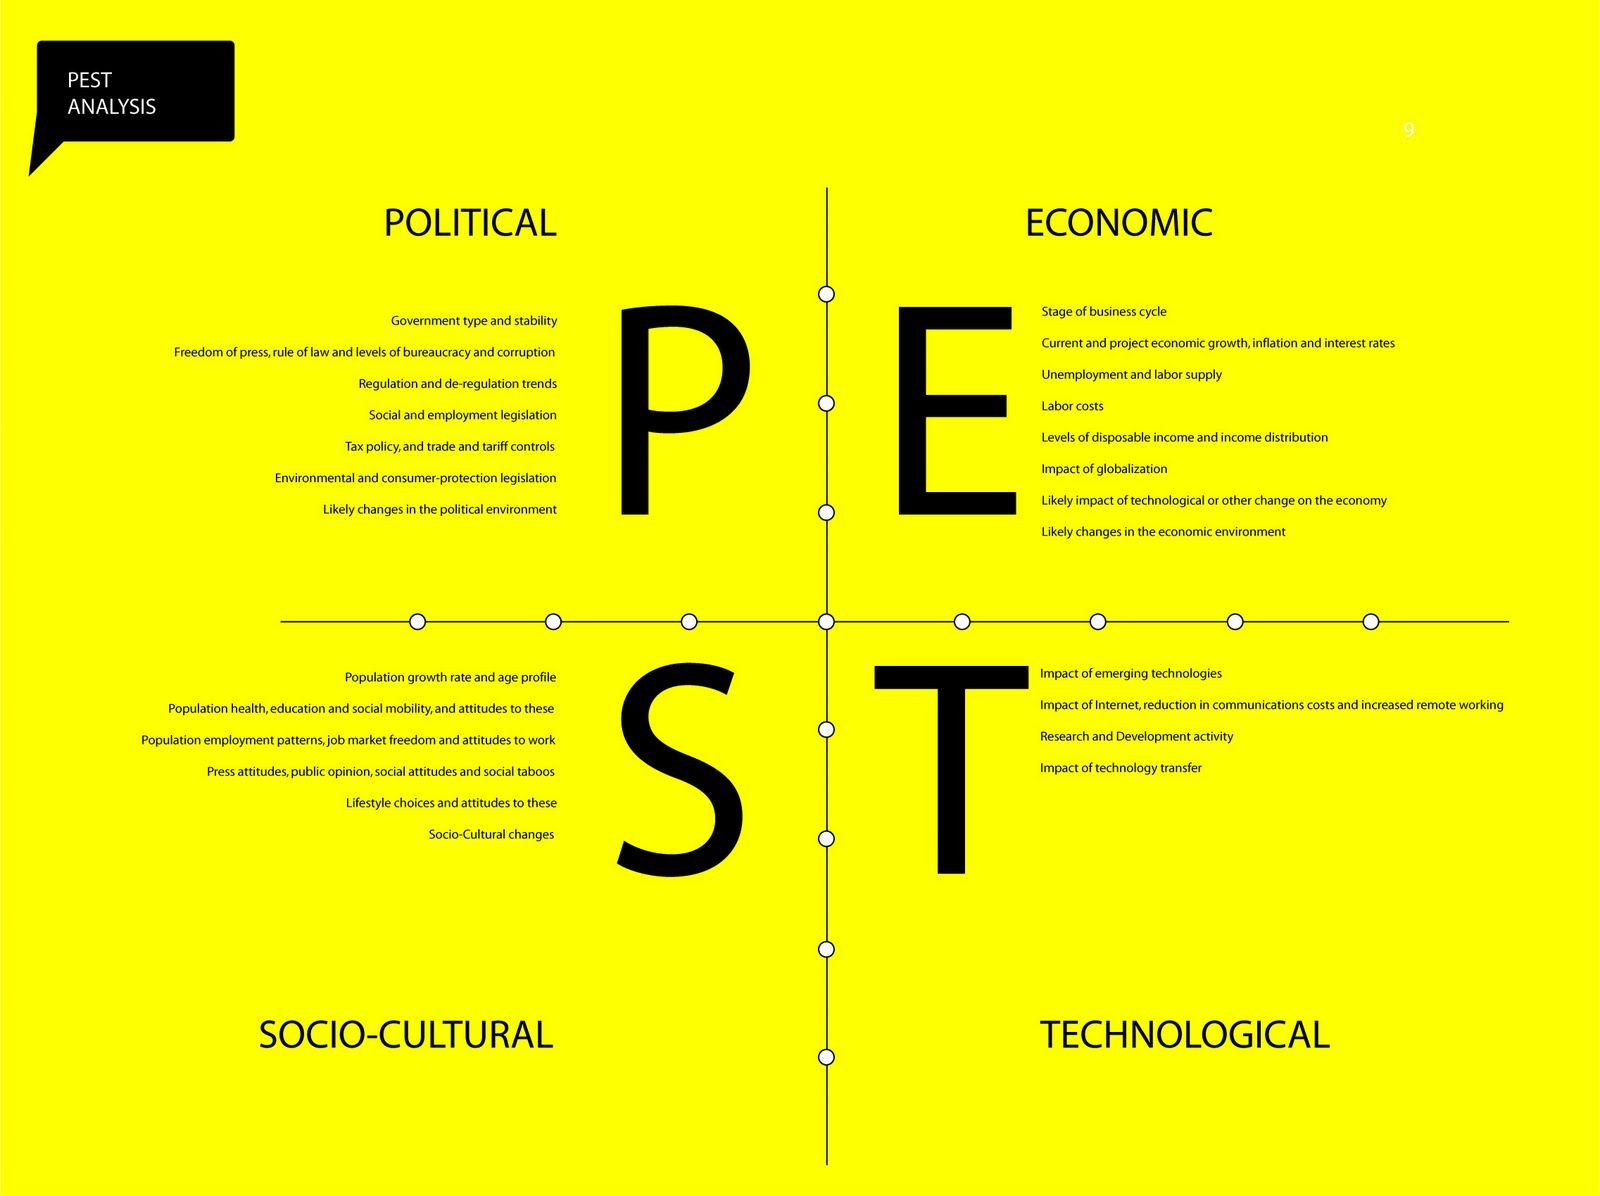 economics and pestle analysis Pest analysis method and examples, with free pest template the pest analysis is a useful tool for understanding market growth or decline, and as such the position, potential and direction.